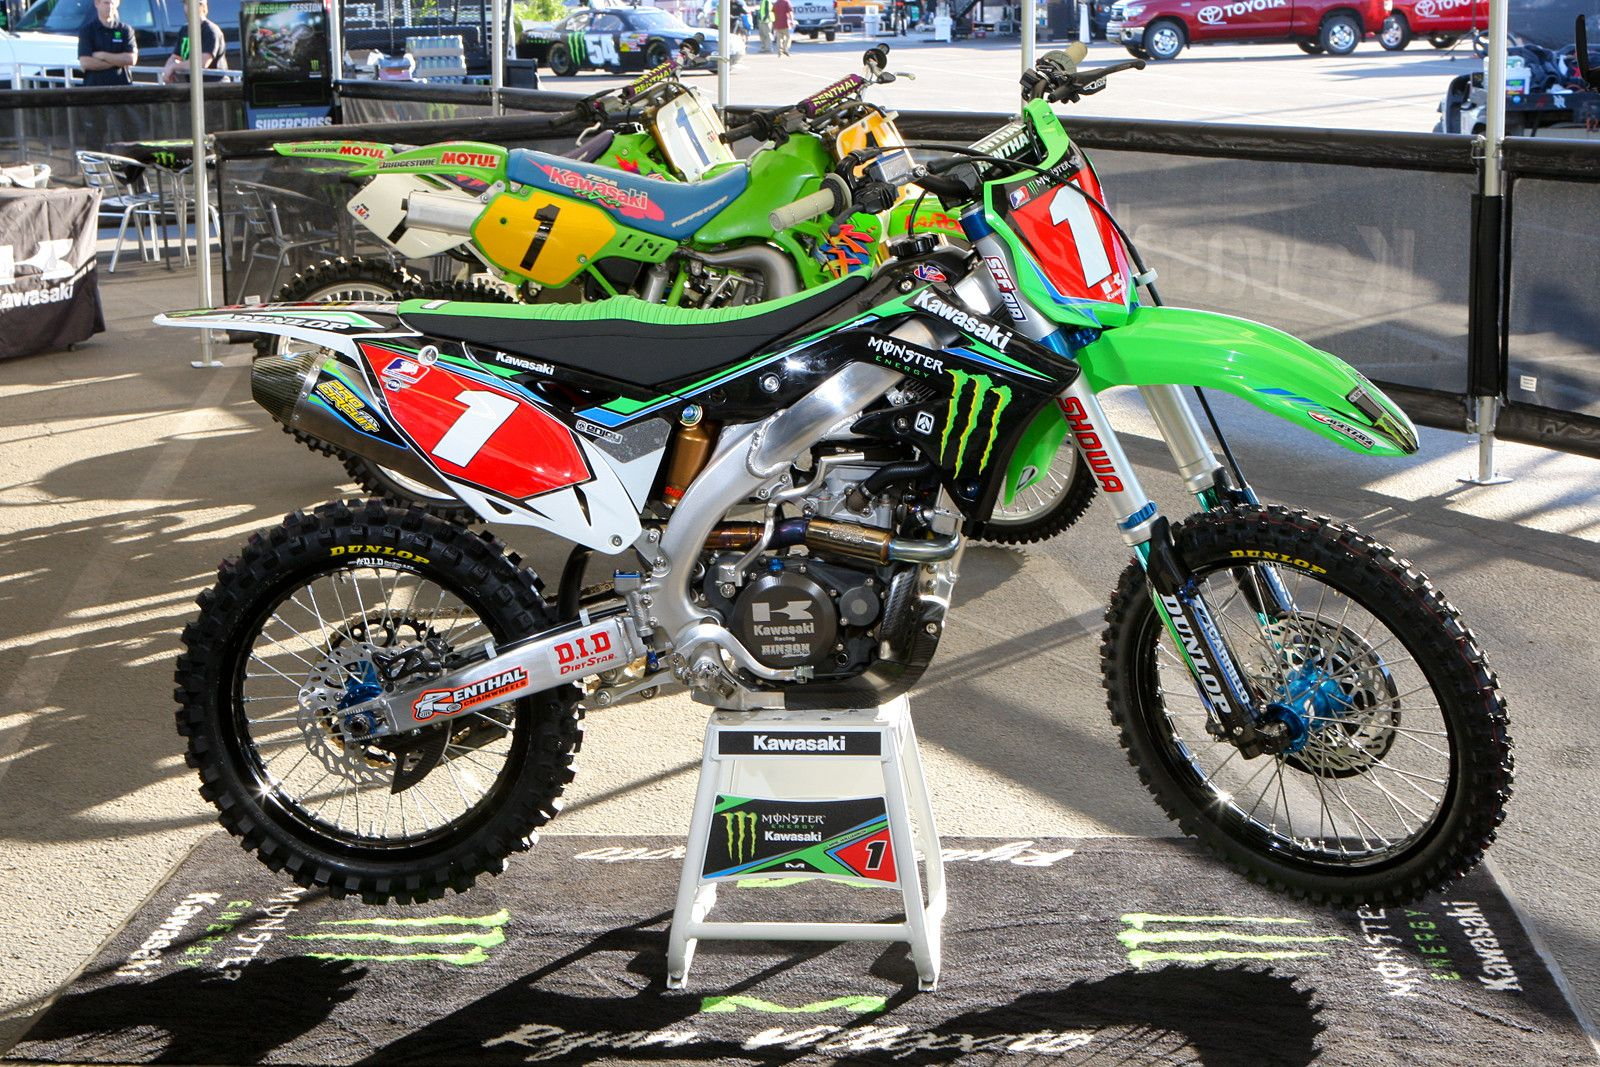 Kawasaki Kx 450 Team Monster Energy Kawasaki Ryan Villopoto Supercross 2013 Bike Experience Motocross Bikes Dirtbikes